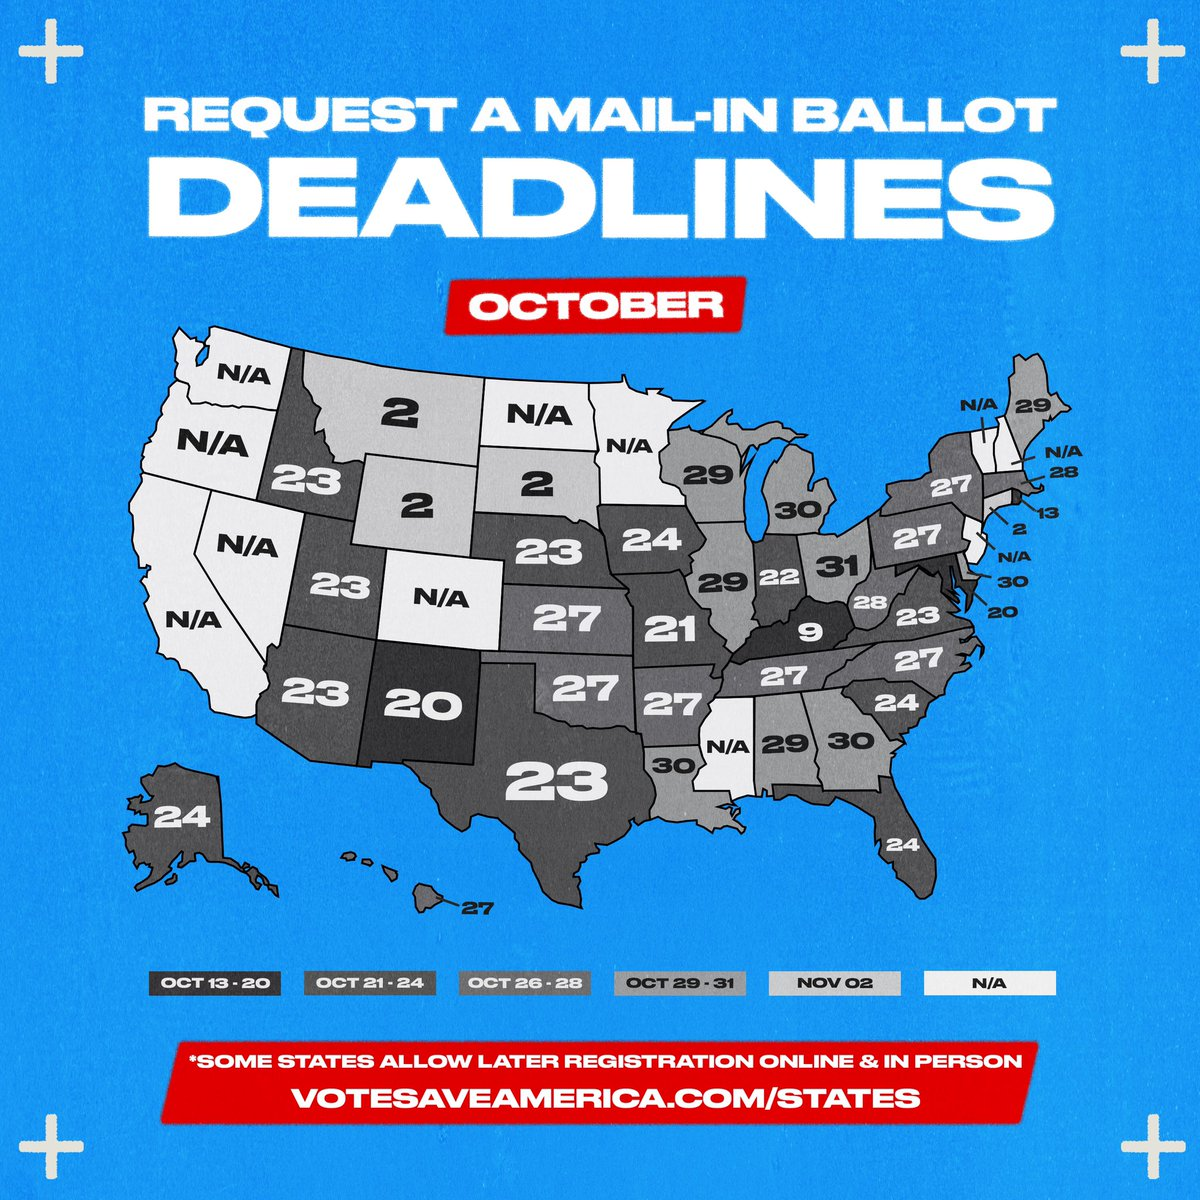 With COVID-19, voting safely is a priority — and one of the safest options on Election Day is to vote by mail. In some states, you will only be sent a mail-in ballot if you request one. Request yours at !